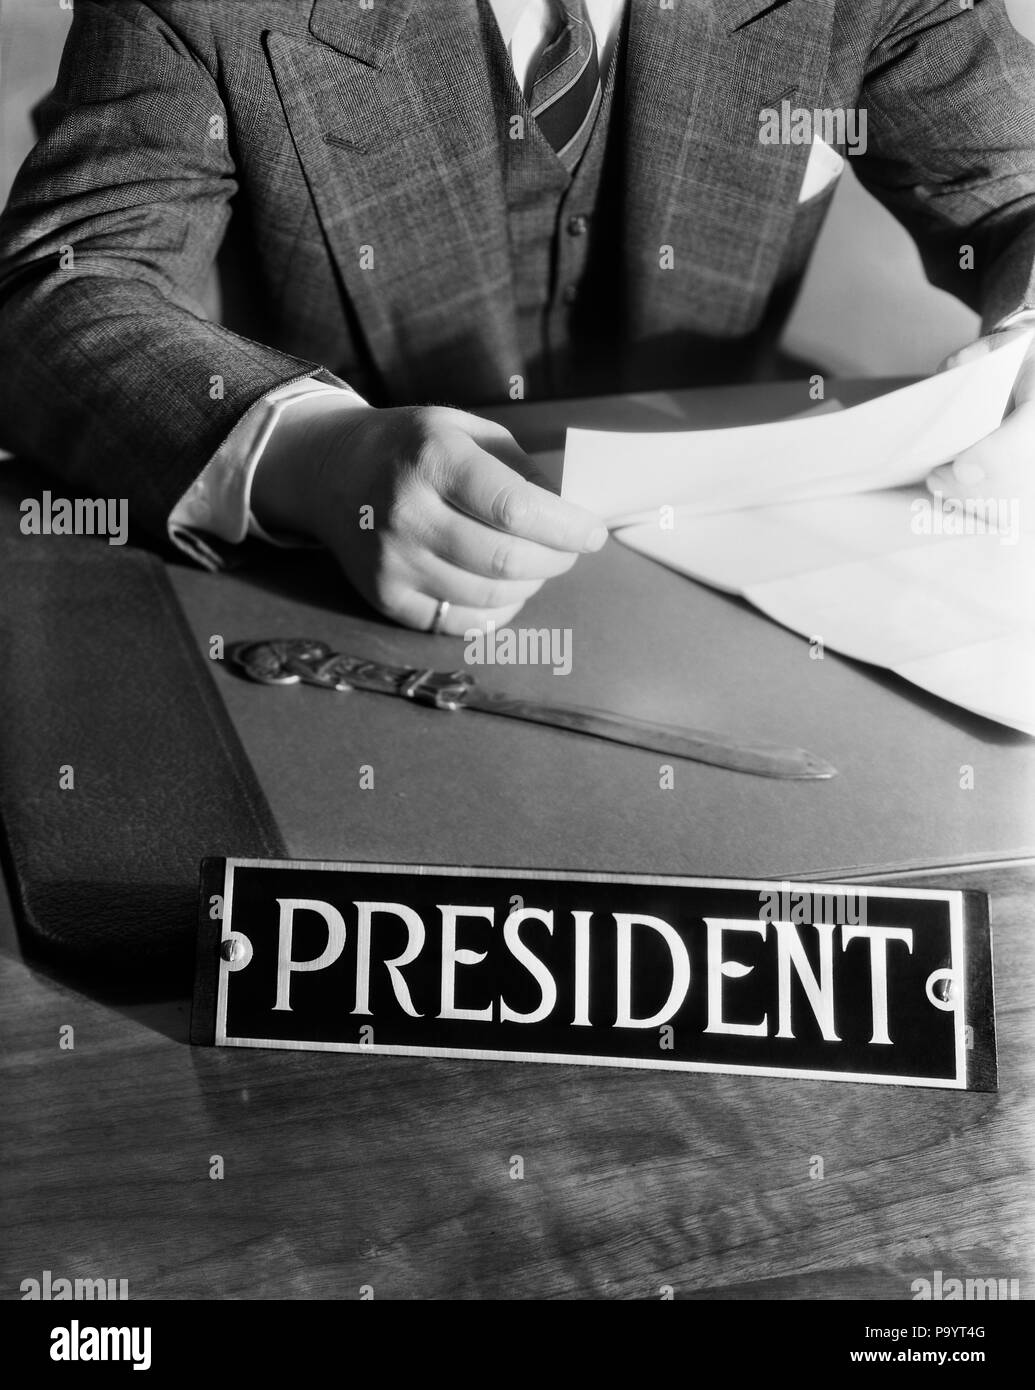 1930s 1940s 1950s MAN SITTING AT DESK READING LETTER WITH SIGN PRESIDENT - bx005410 CAM001 HARS LEADERSHIP CAM001 OPENER AUTHORITY CEO OCCUPATIONS PRESIDENTS BOSSES RESPONSIBILITY TITLE ANONYMOUS SYMBOLIC MANAGERS BLACK AND WHITE CAUCASIAN ETHNICITY CORPORATION NECK DOWN OLD FASHIONED - Stock Image